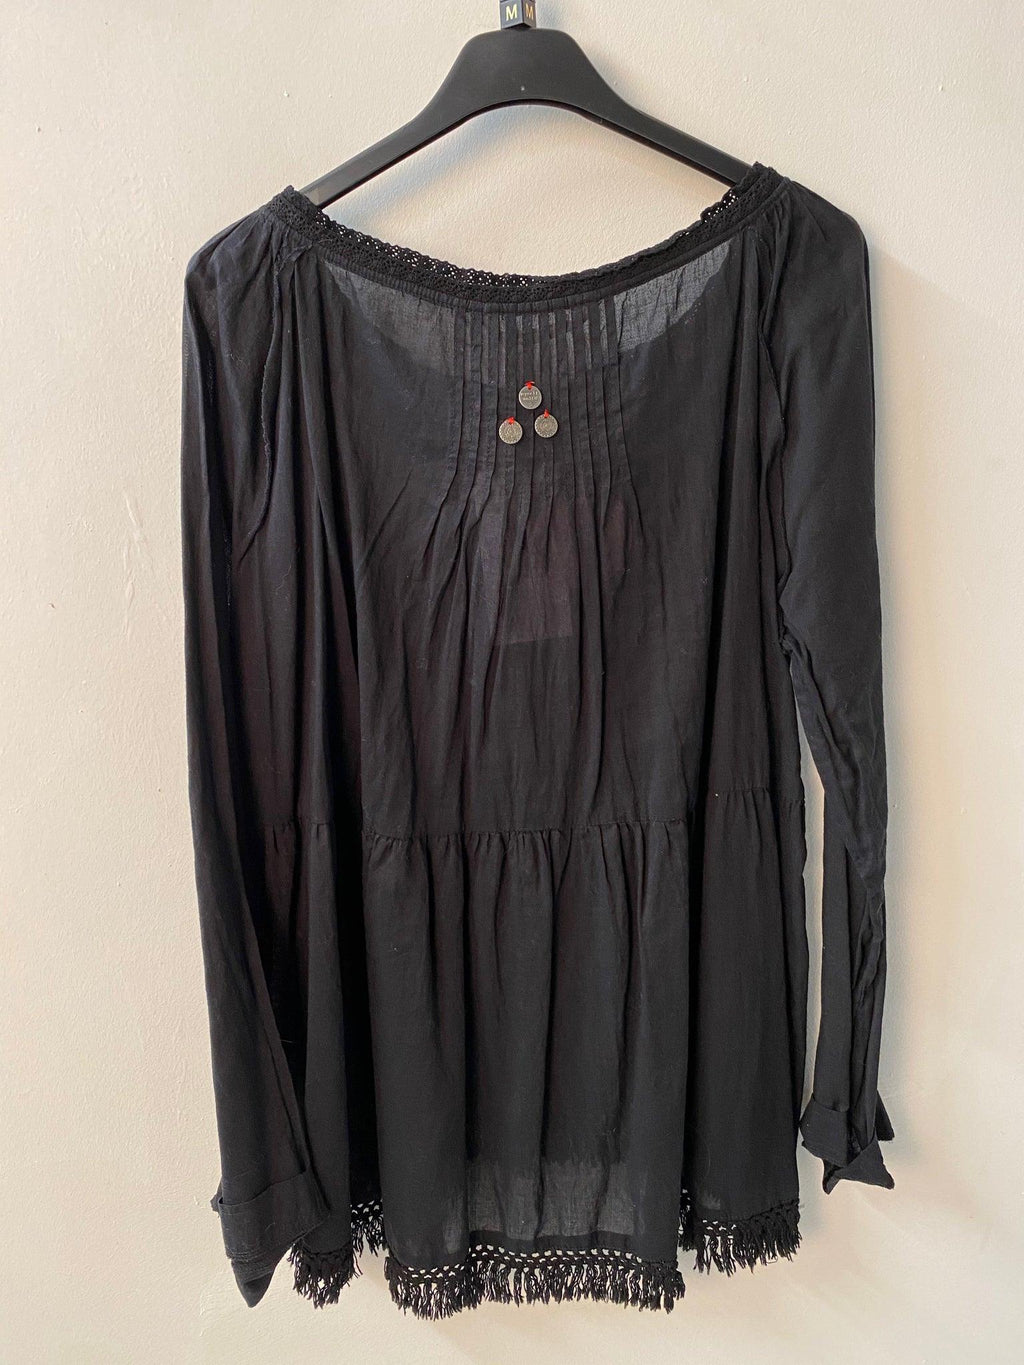 Odd Molly Black Boho Top Cotton Size 10 BNWT